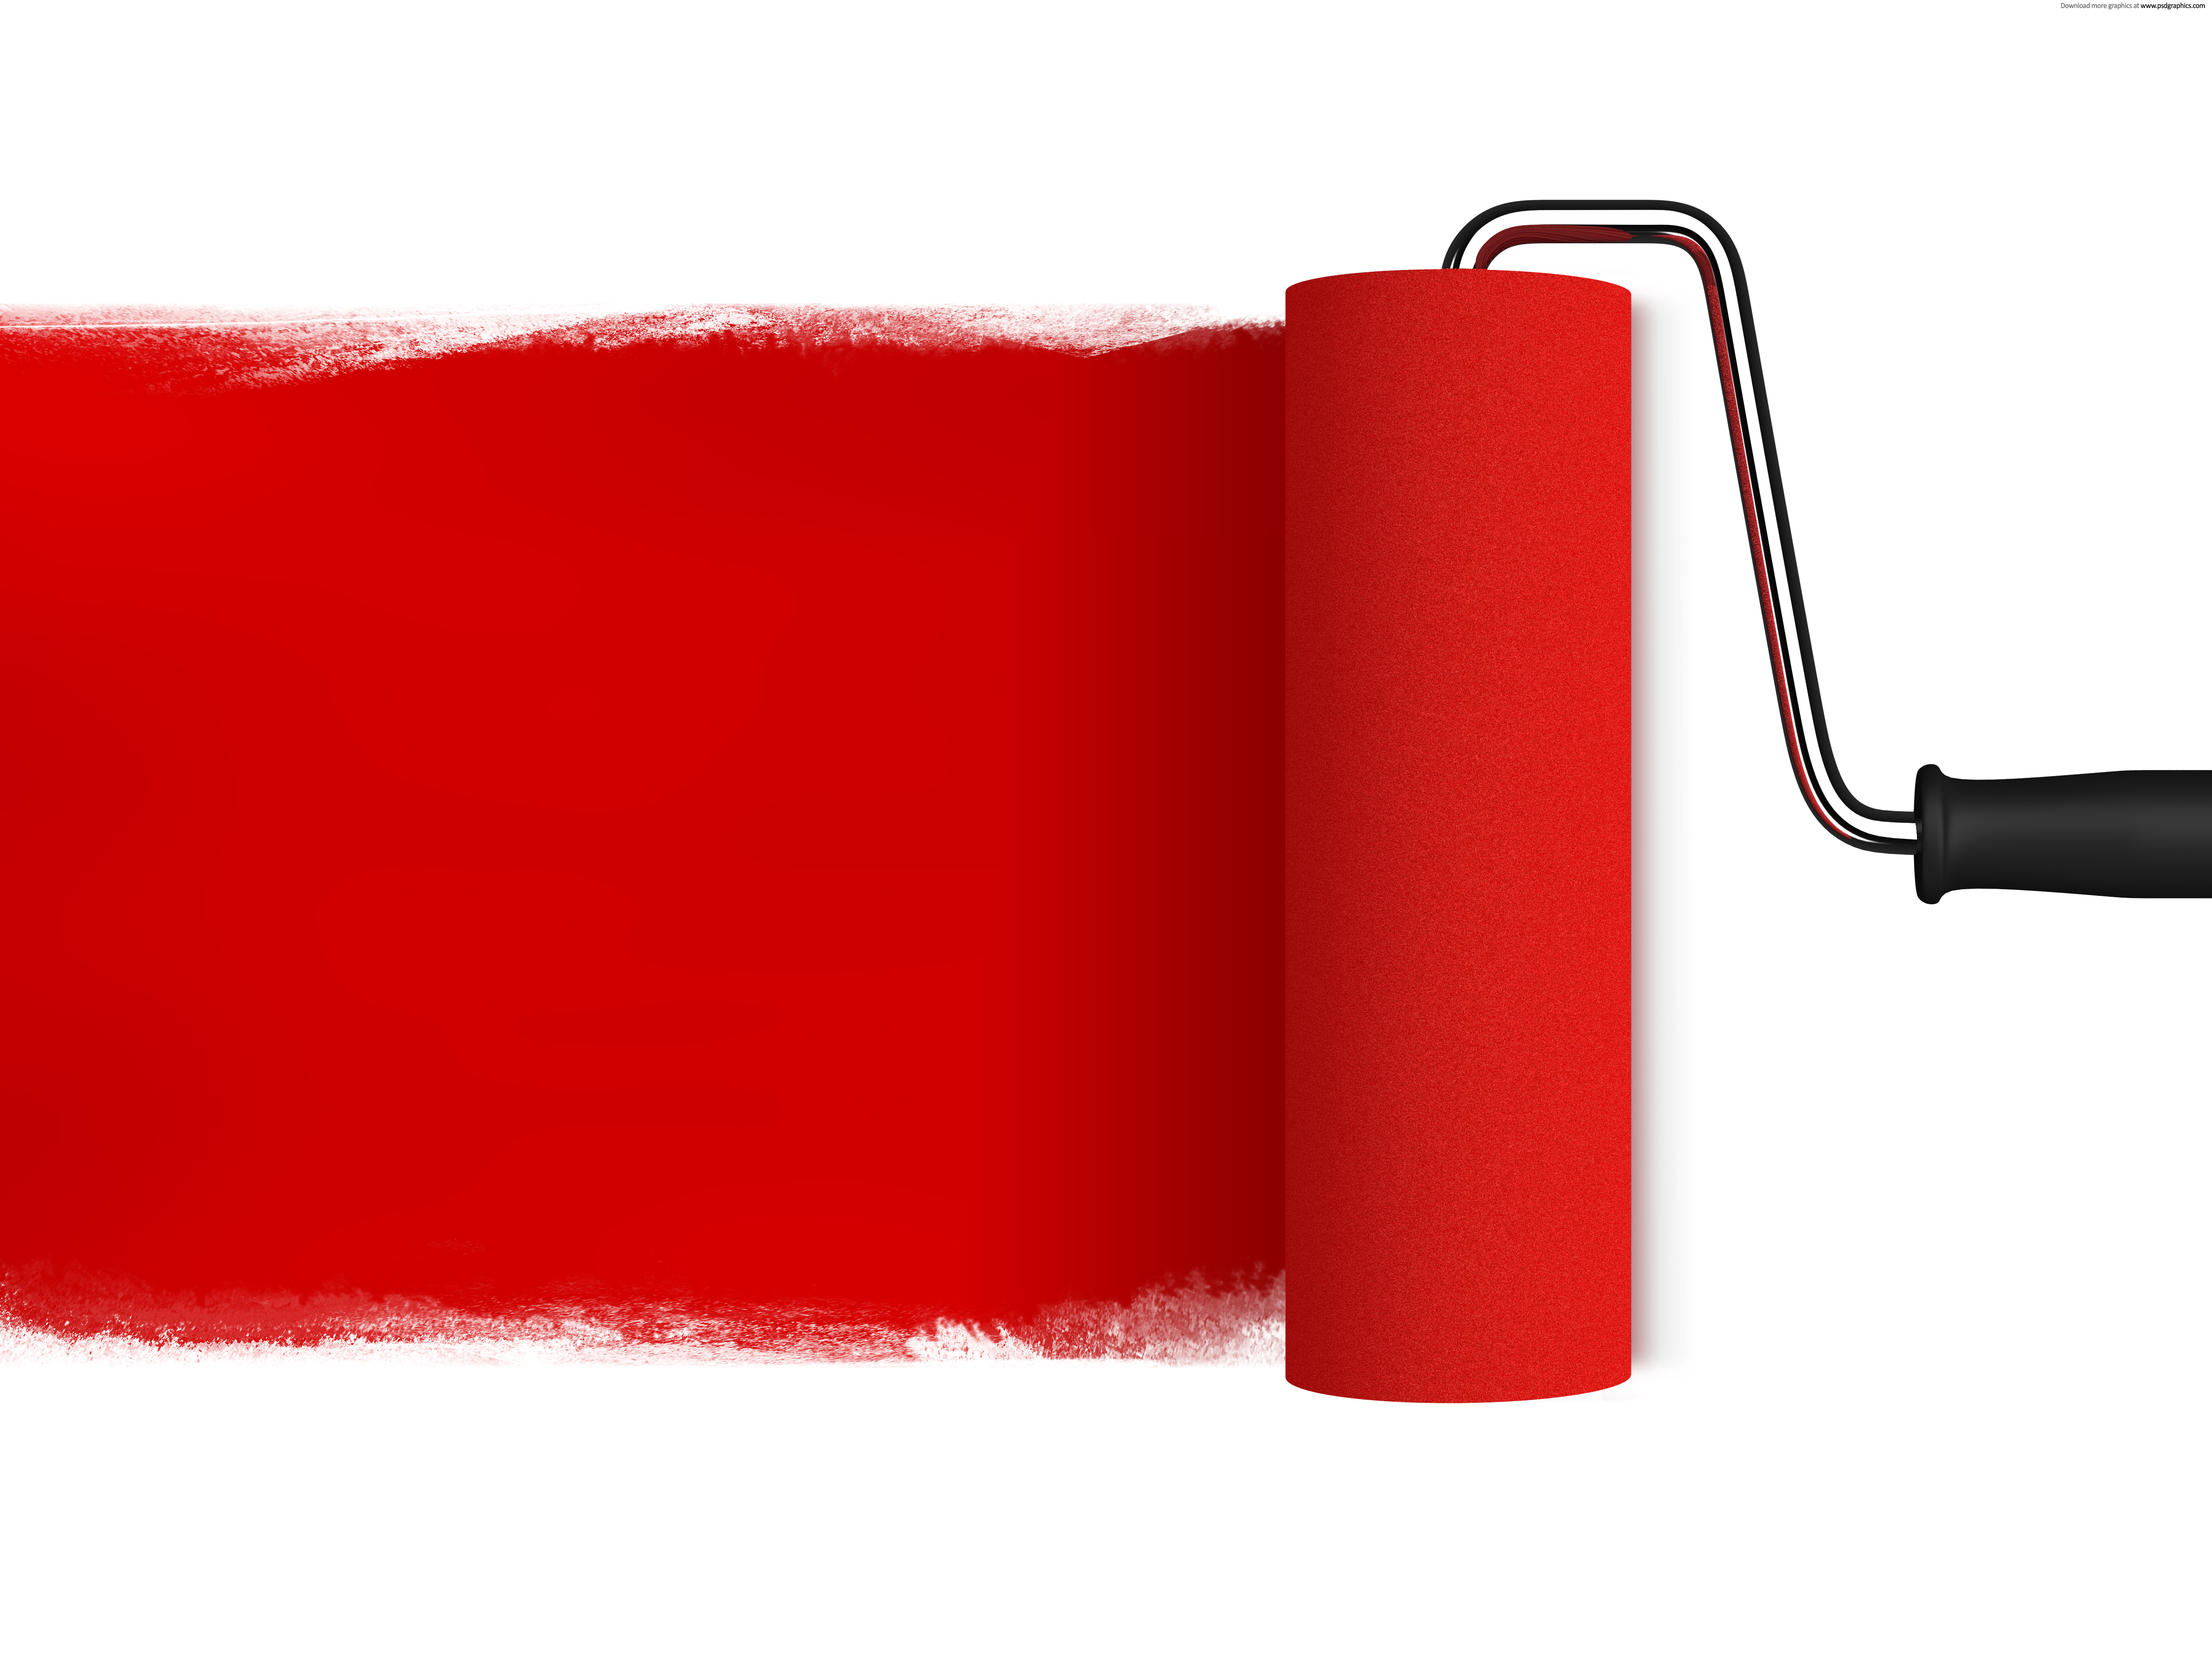 Red Paint Roller